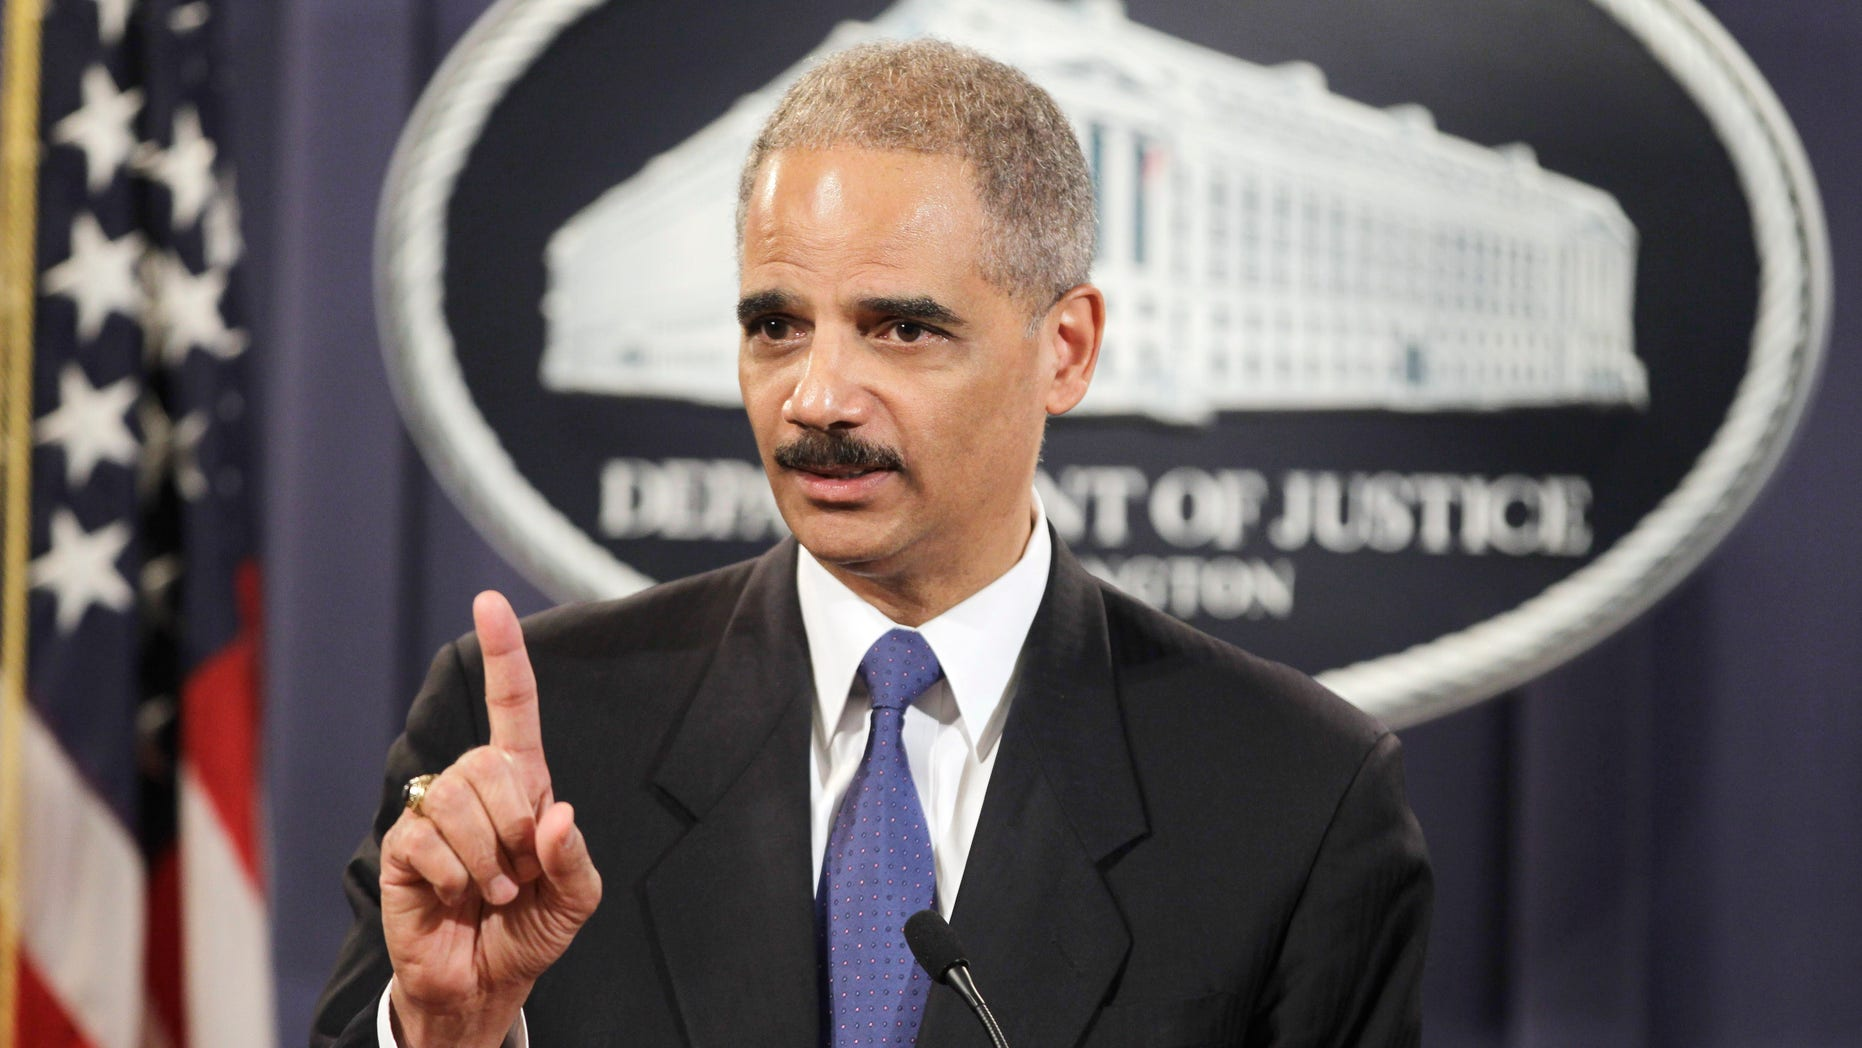 Nov. 29: Attorney General Eric Holder answers a question about WikiLeaks during a news conference at the Justice Department in Washington, D.C.